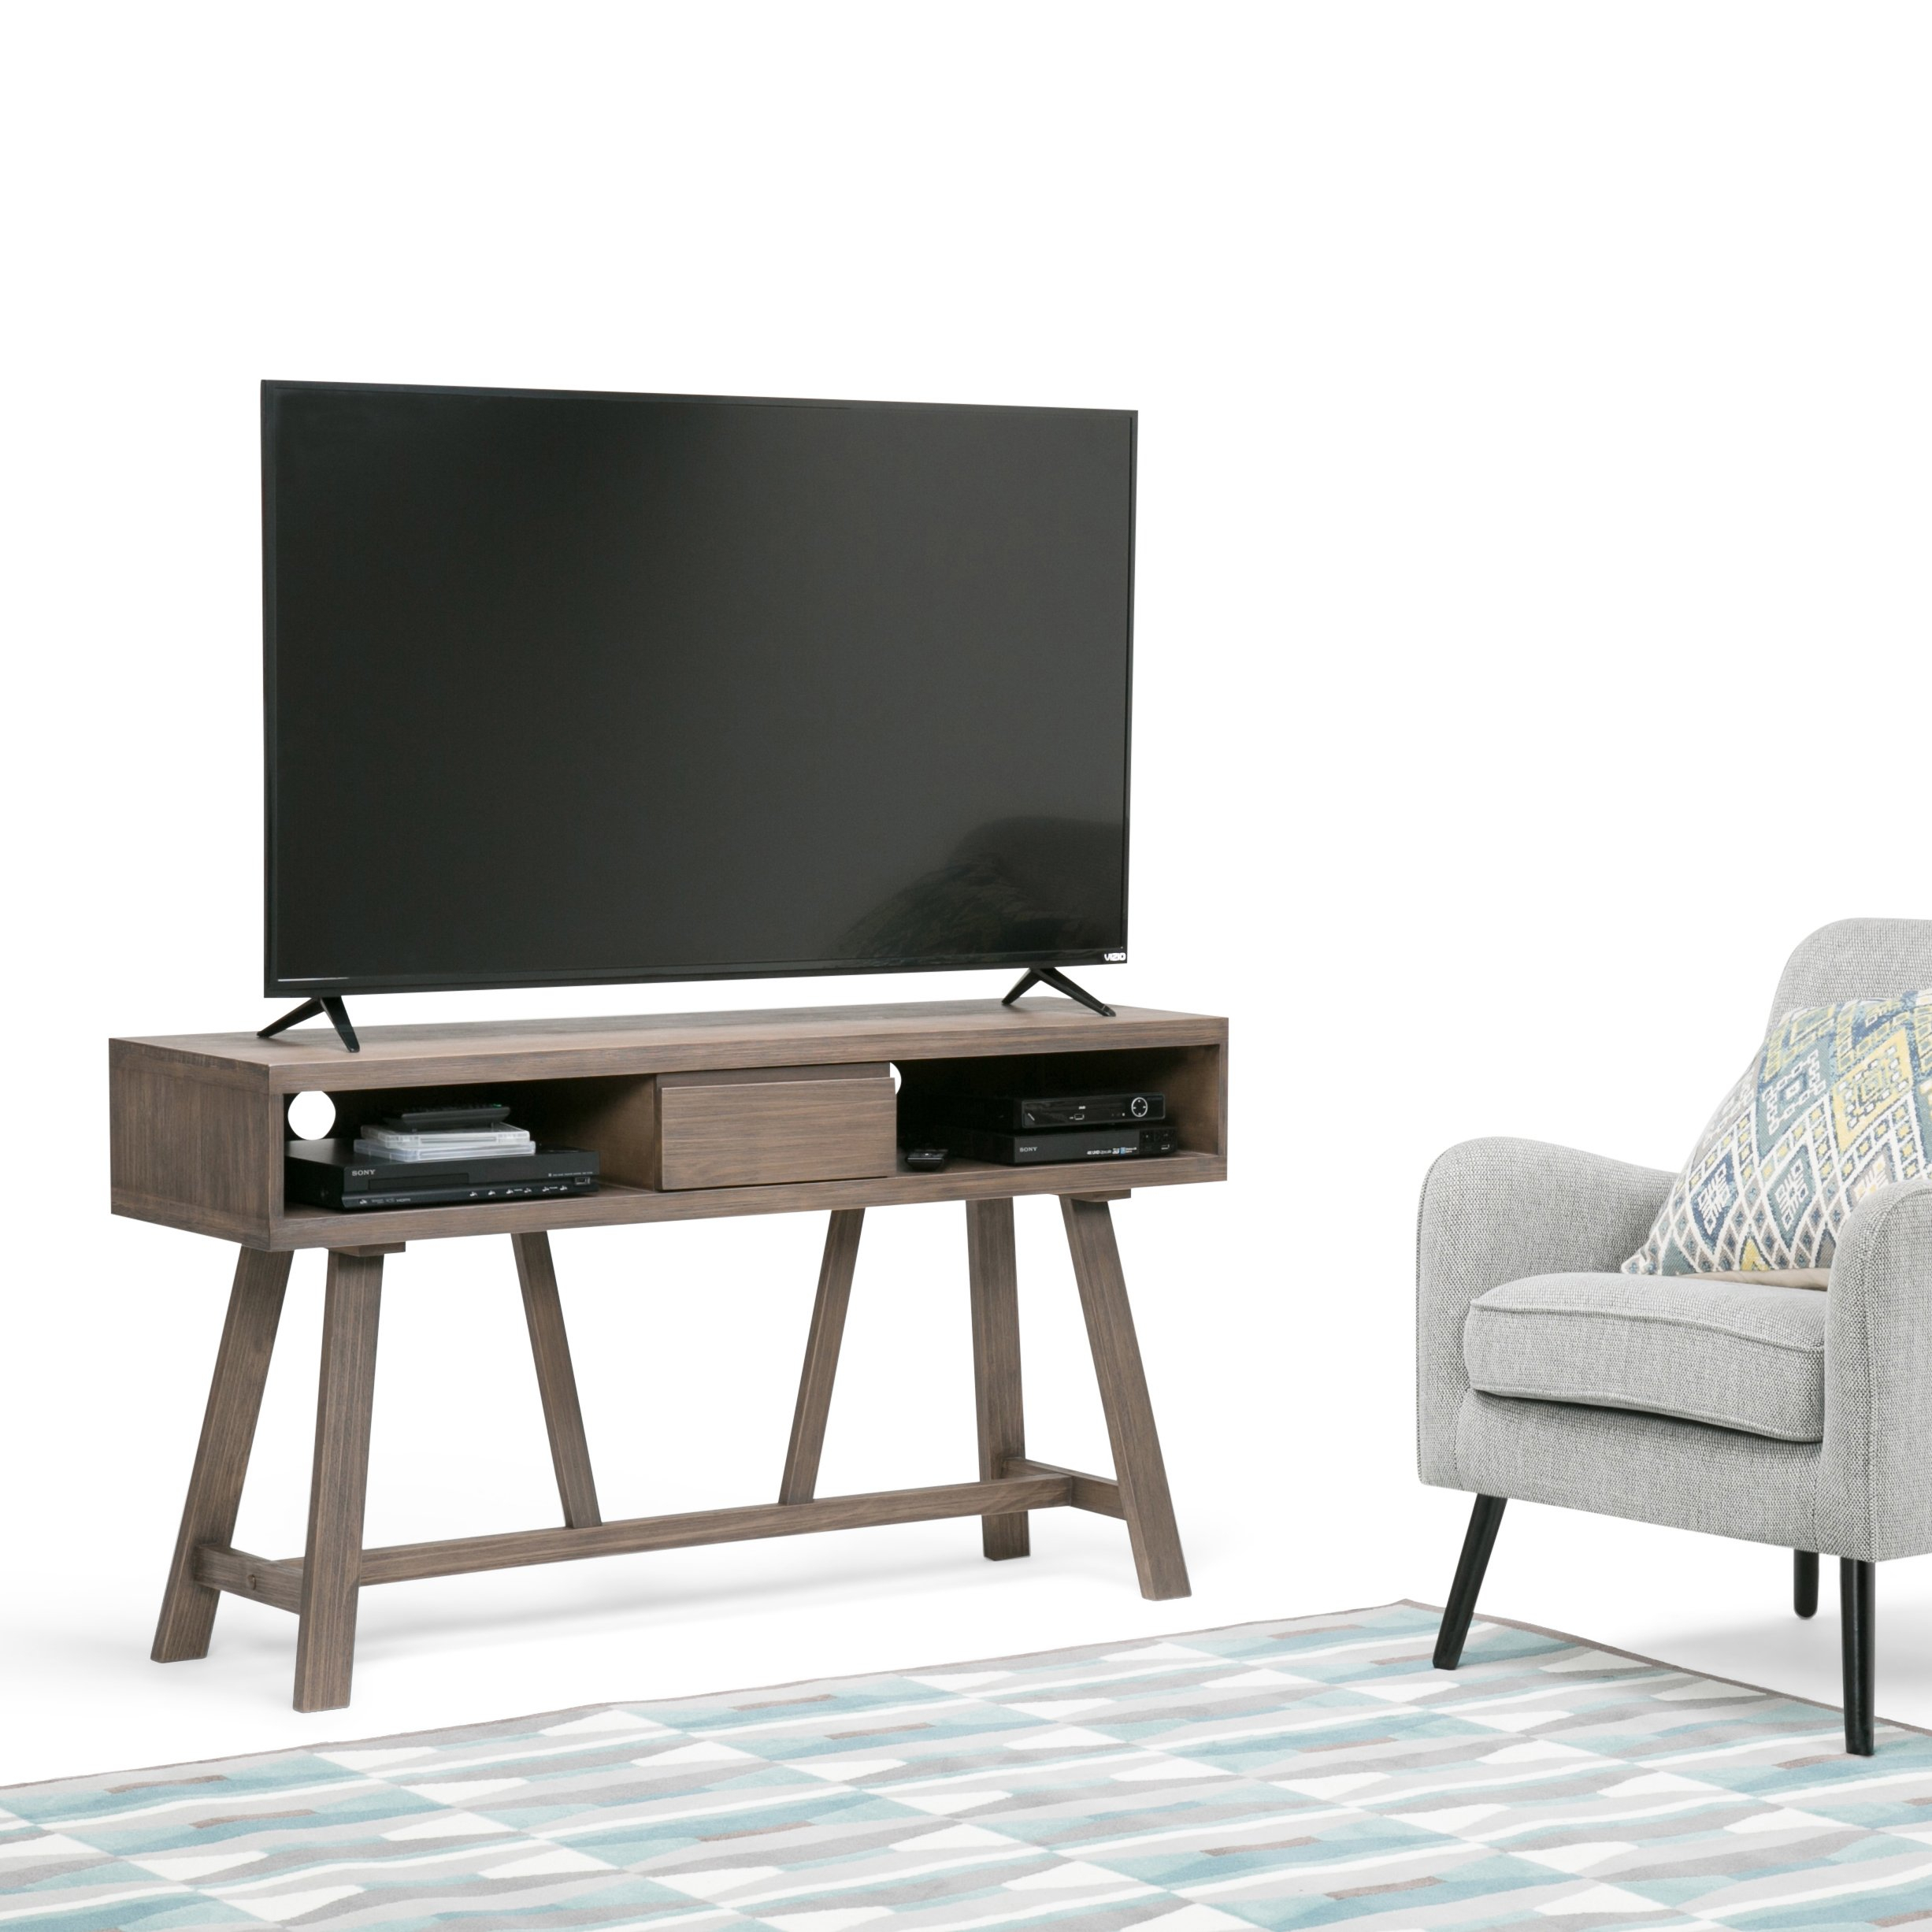 Shop Wyndenhall Stewart Solid Wood 54 Inch Tv Media Stand For Tvs Up intended for Canyon 54 Inch Tv Stands (Image 25 of 30)